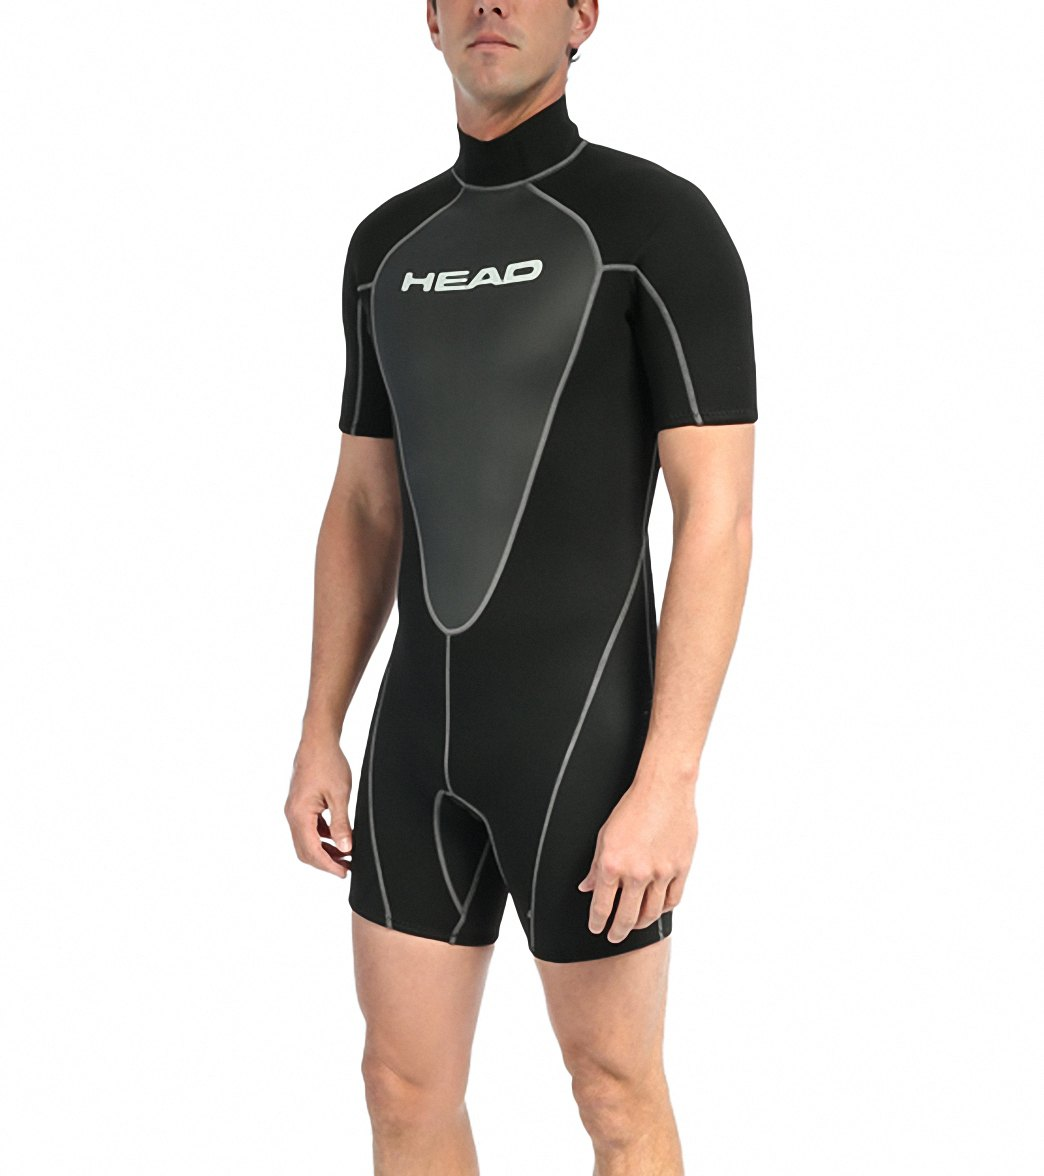 HEAD Wave 2.5 Men s Shorty Wetsuit at SwimOutlet.com - Free Shipping d1d171def